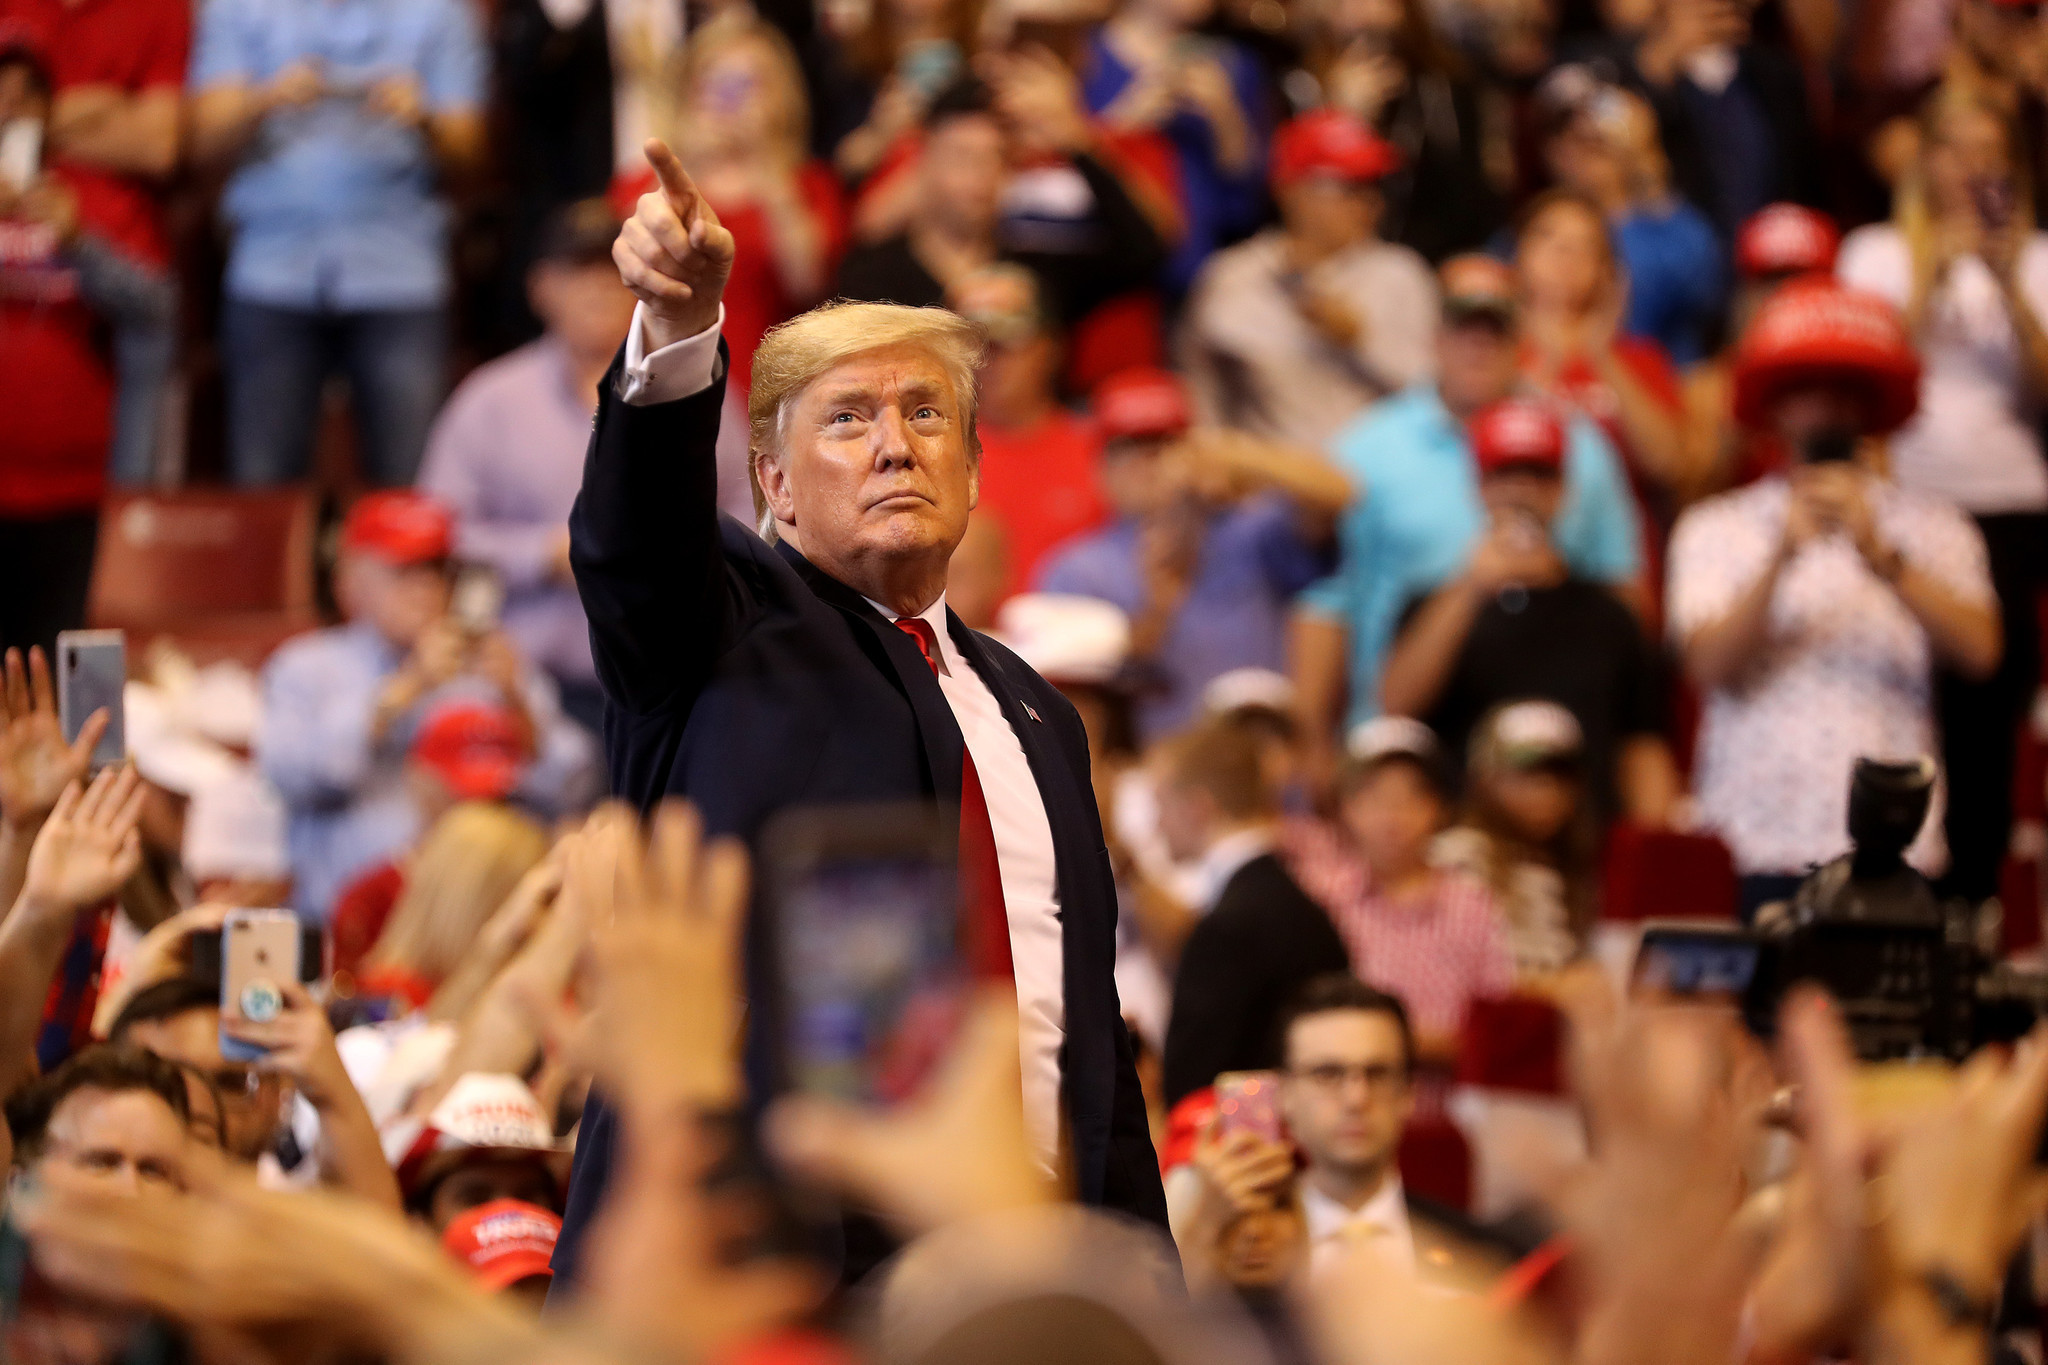 Trump embraces Florida at 'homecoming rally,' airs impeachment grievances